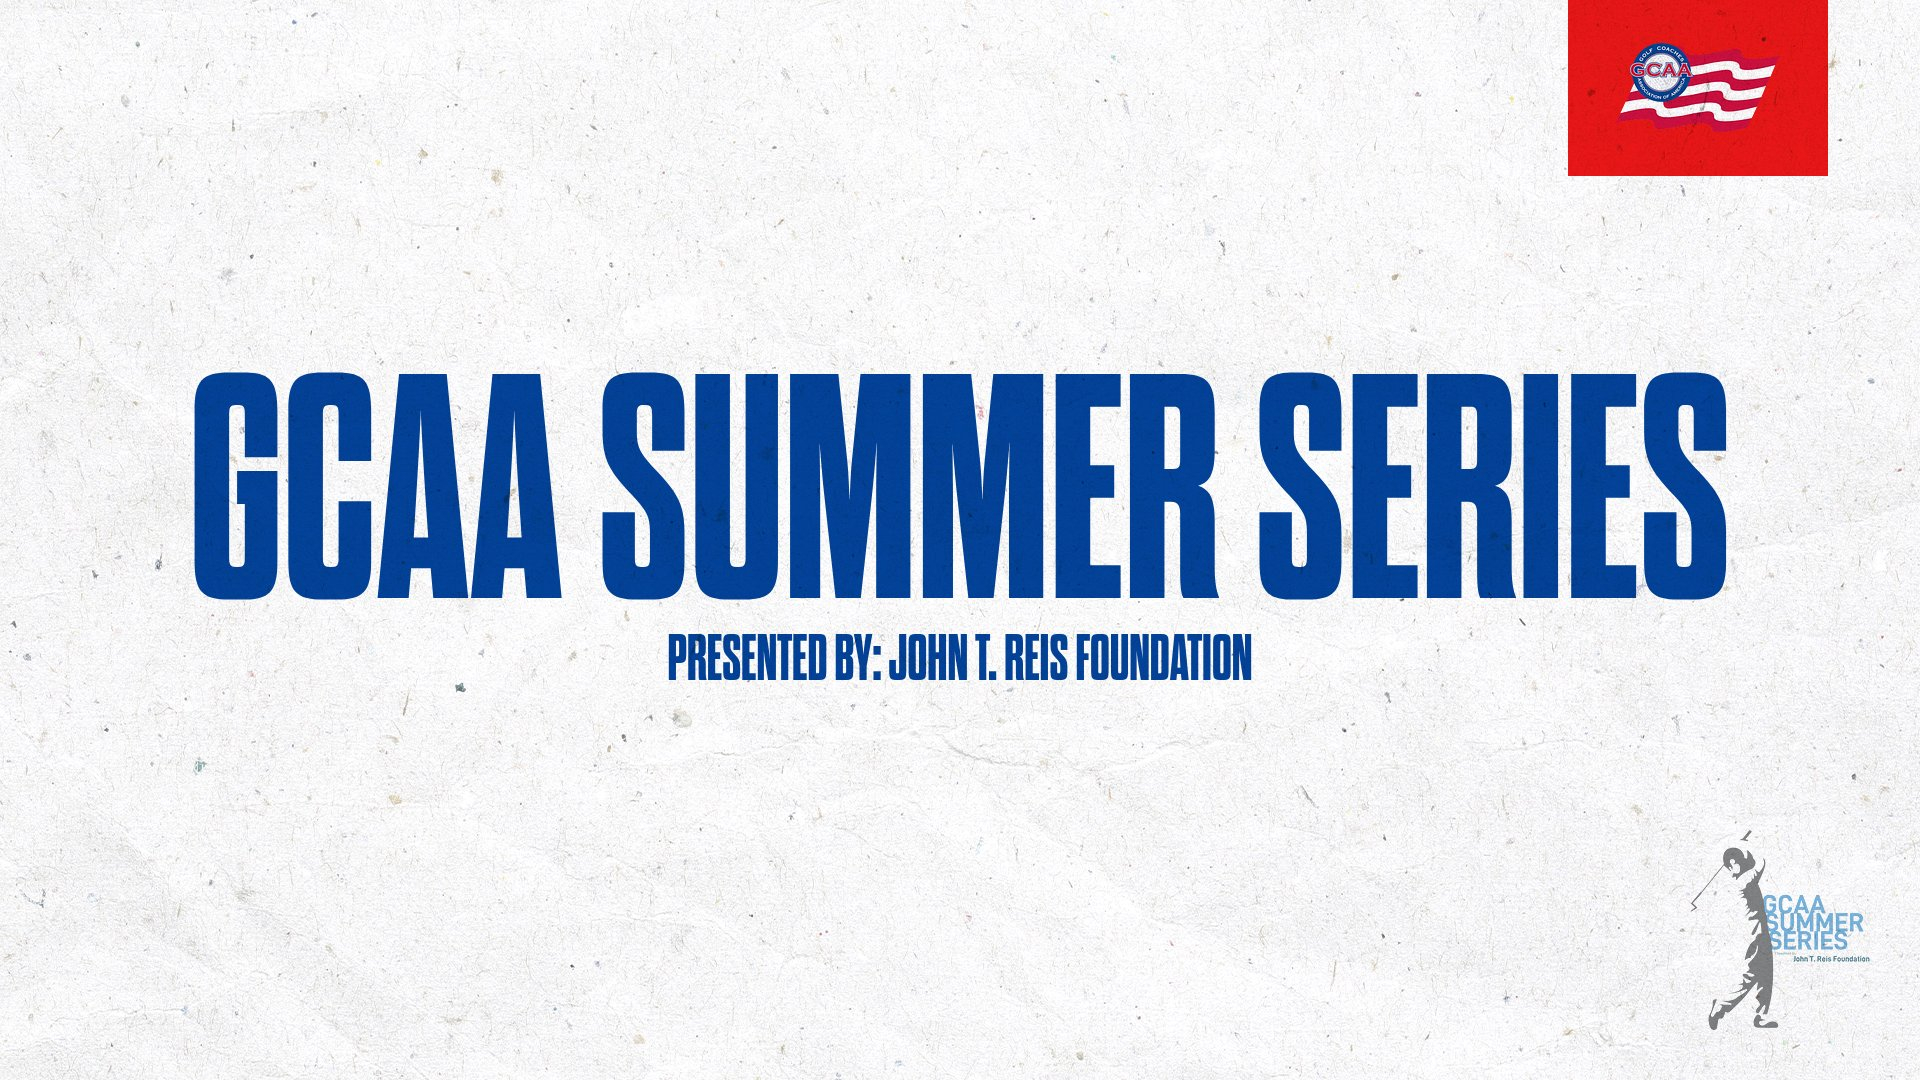 GCAA Announces Summer Series presented by: John T. Reis Foundation